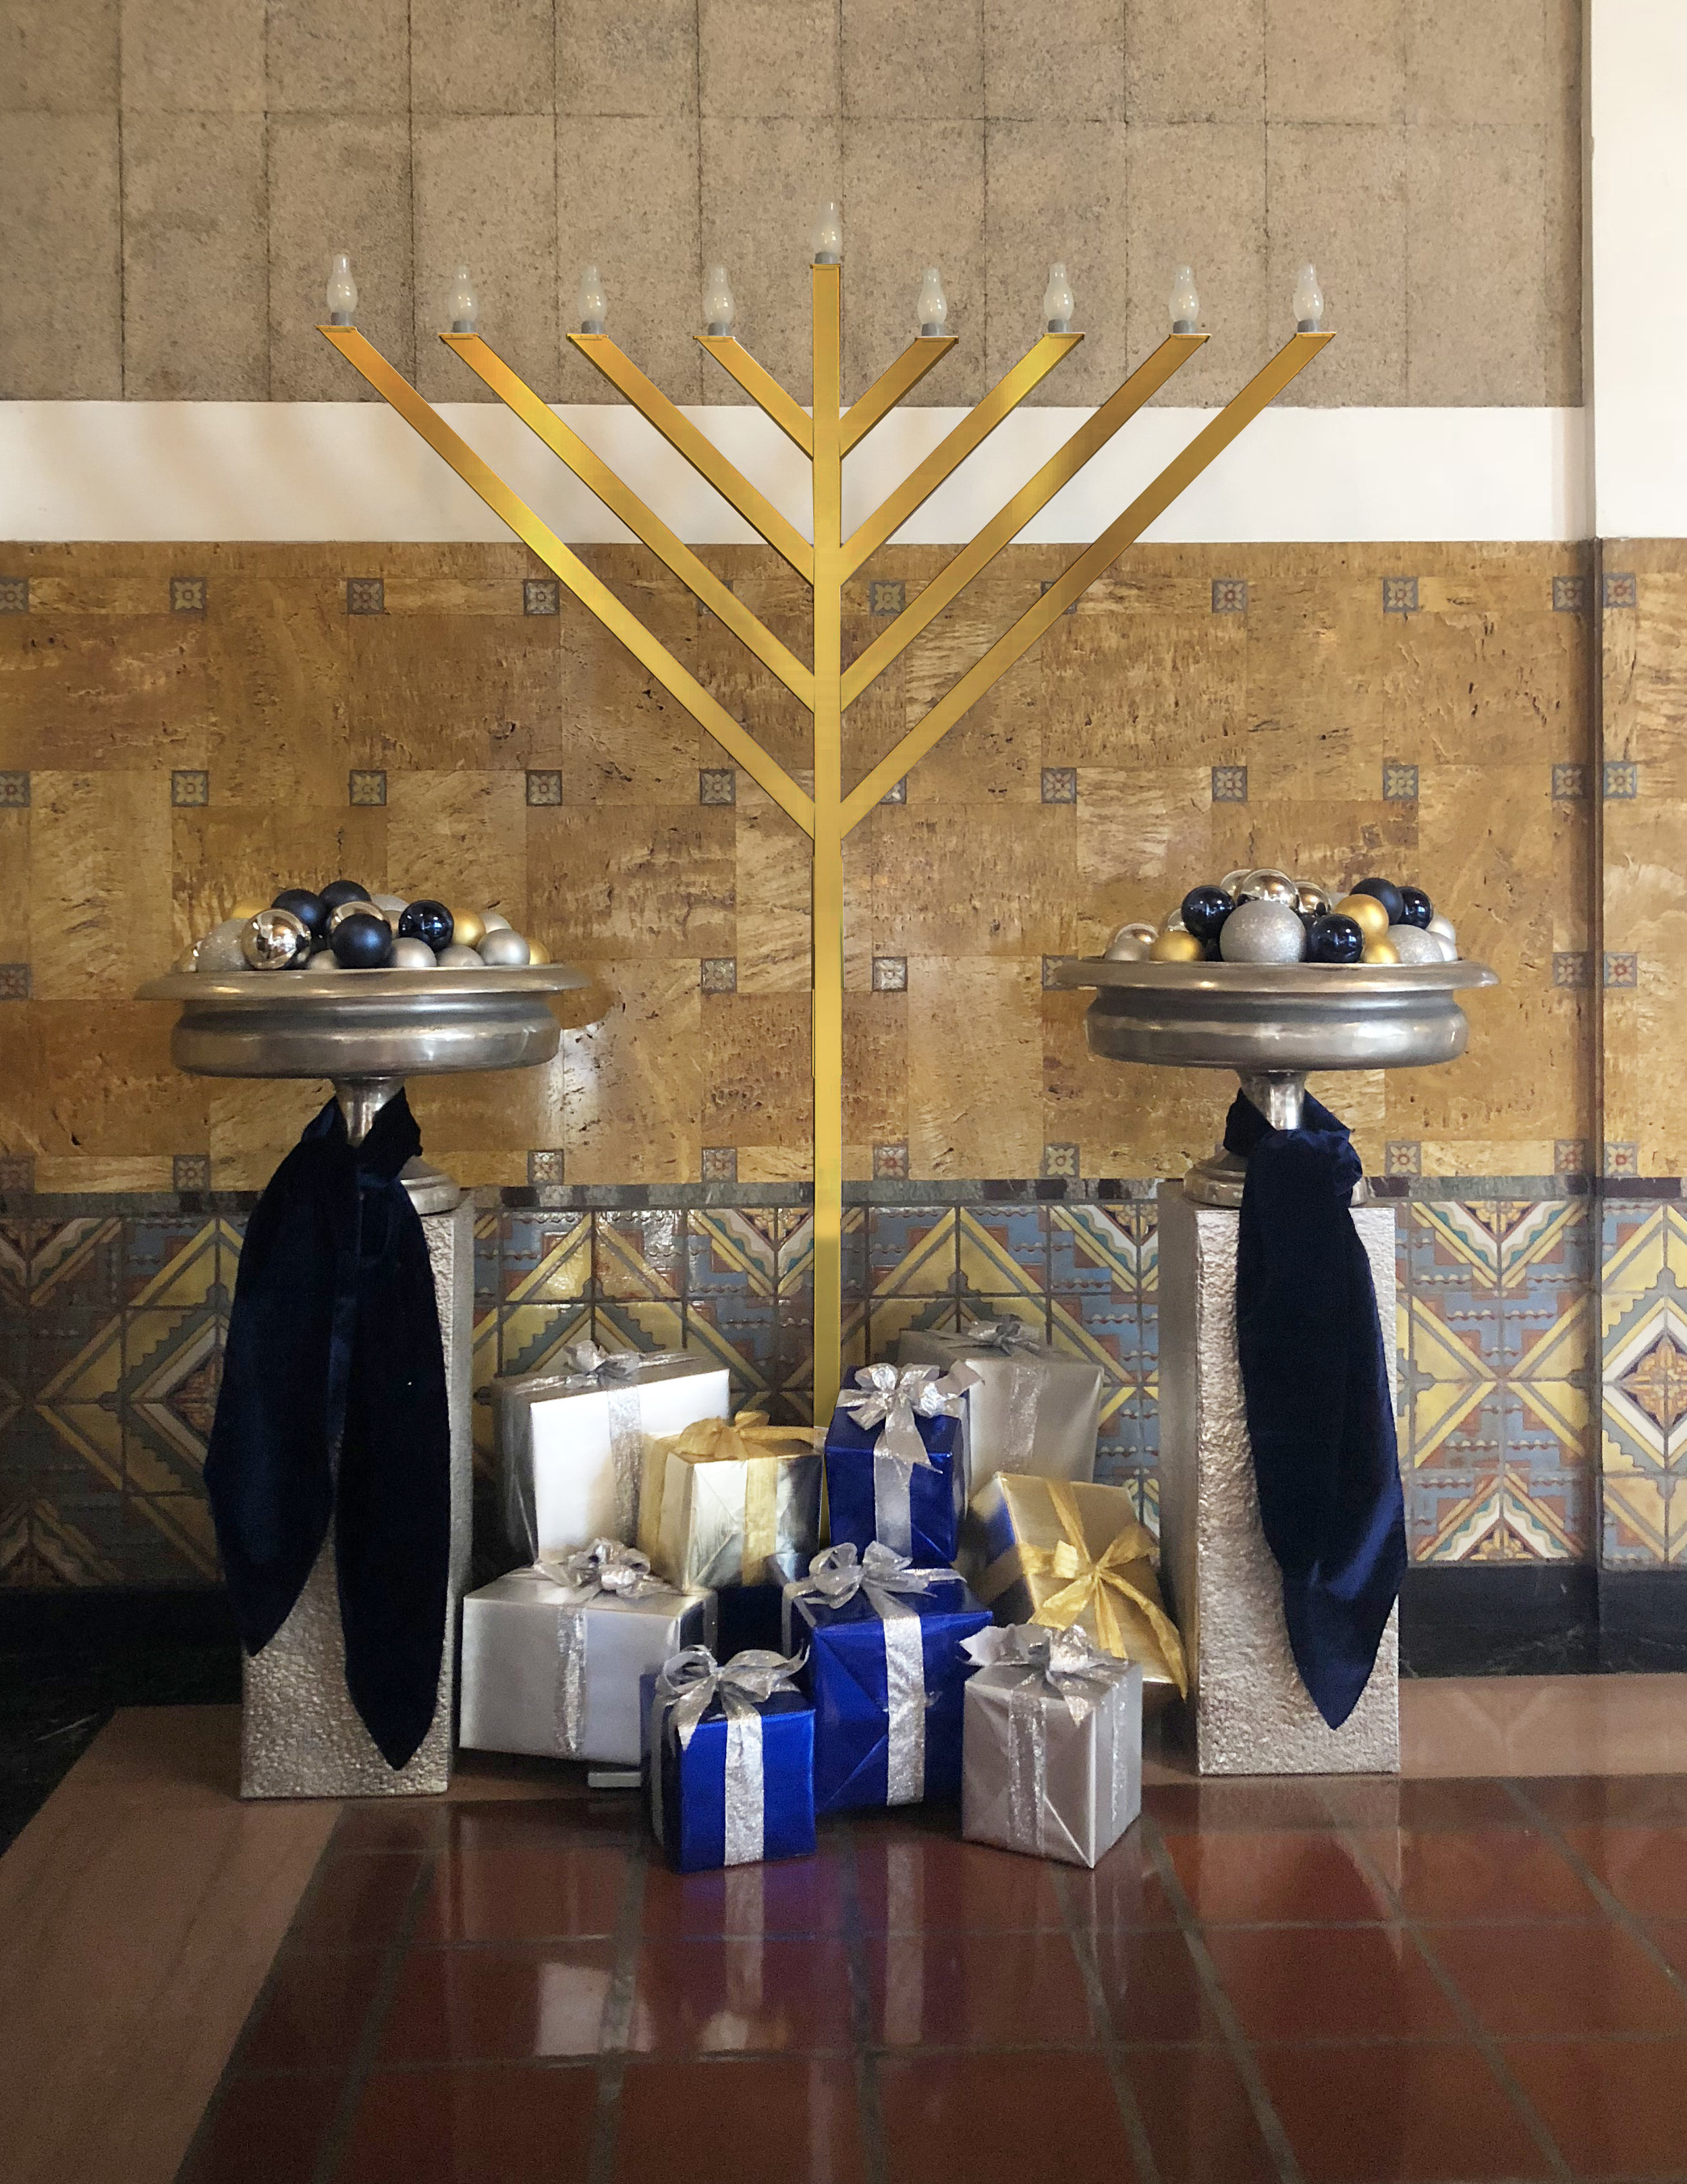 Union Station Los Angeles CA Inside menorah.jpg